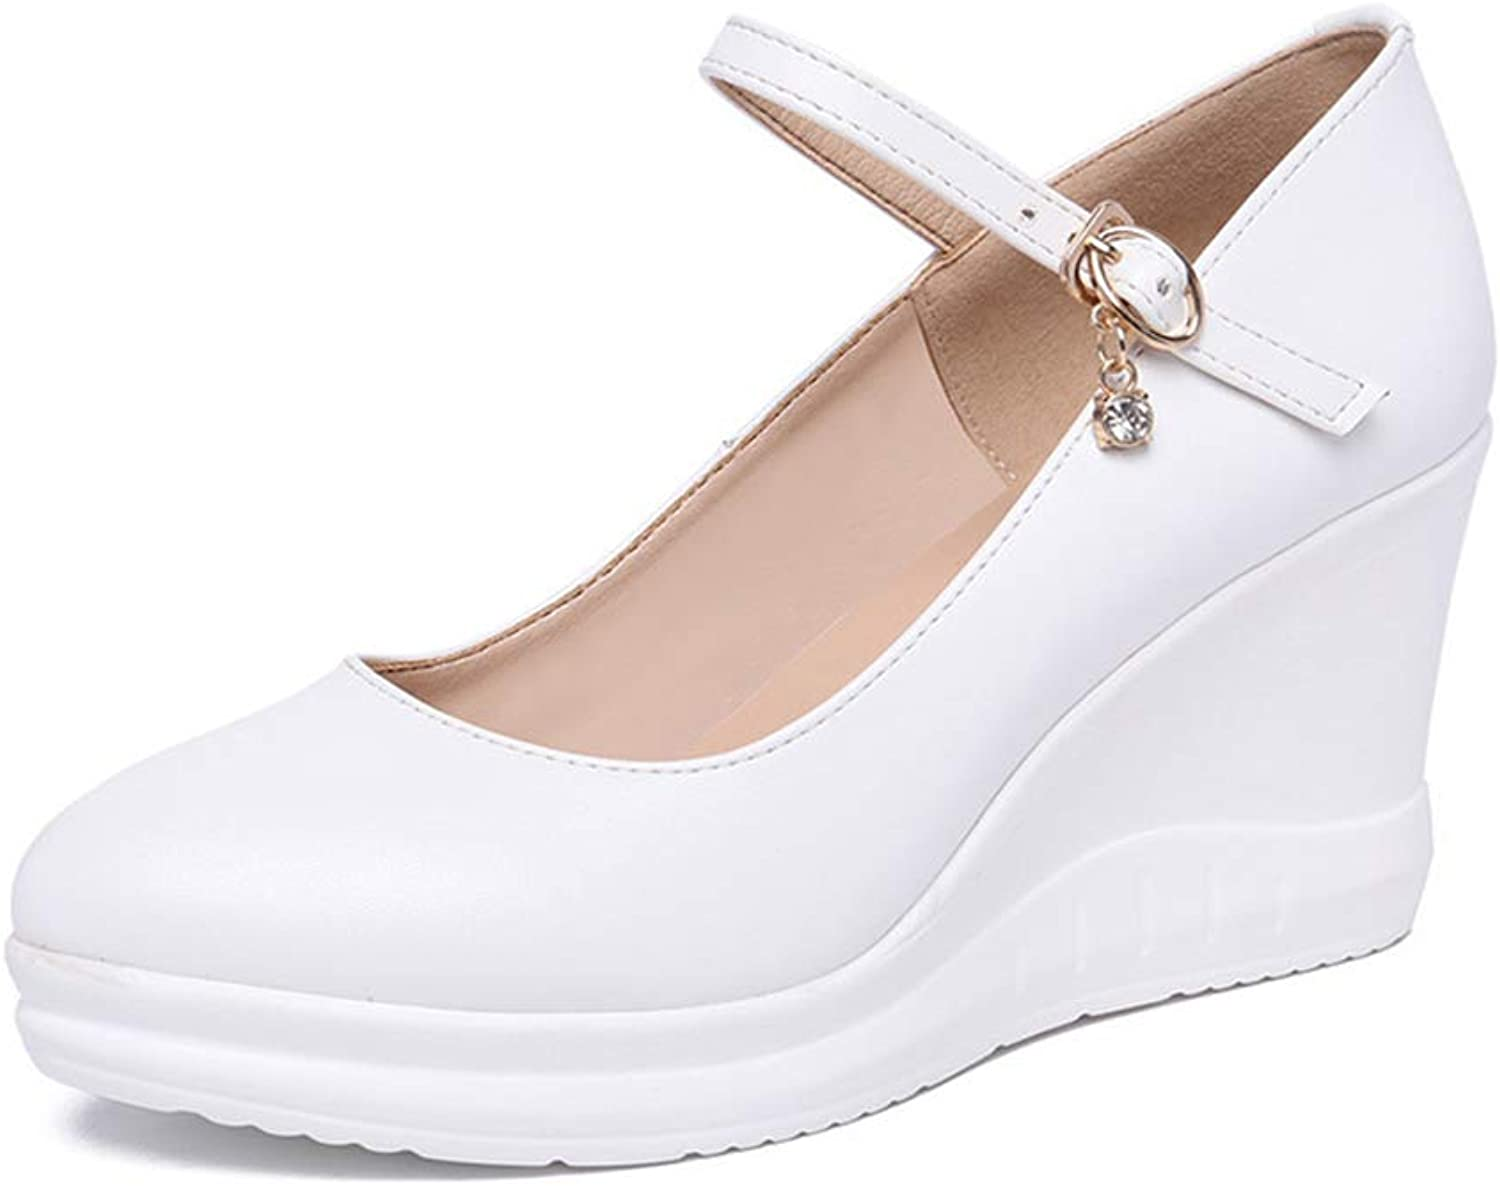 Women's Wedge shoes Pointed Platform shoes Work shoes Cheongsam Catwalk shoes Fashion Buckle shoes Party & Evening (color   White, Size   39)